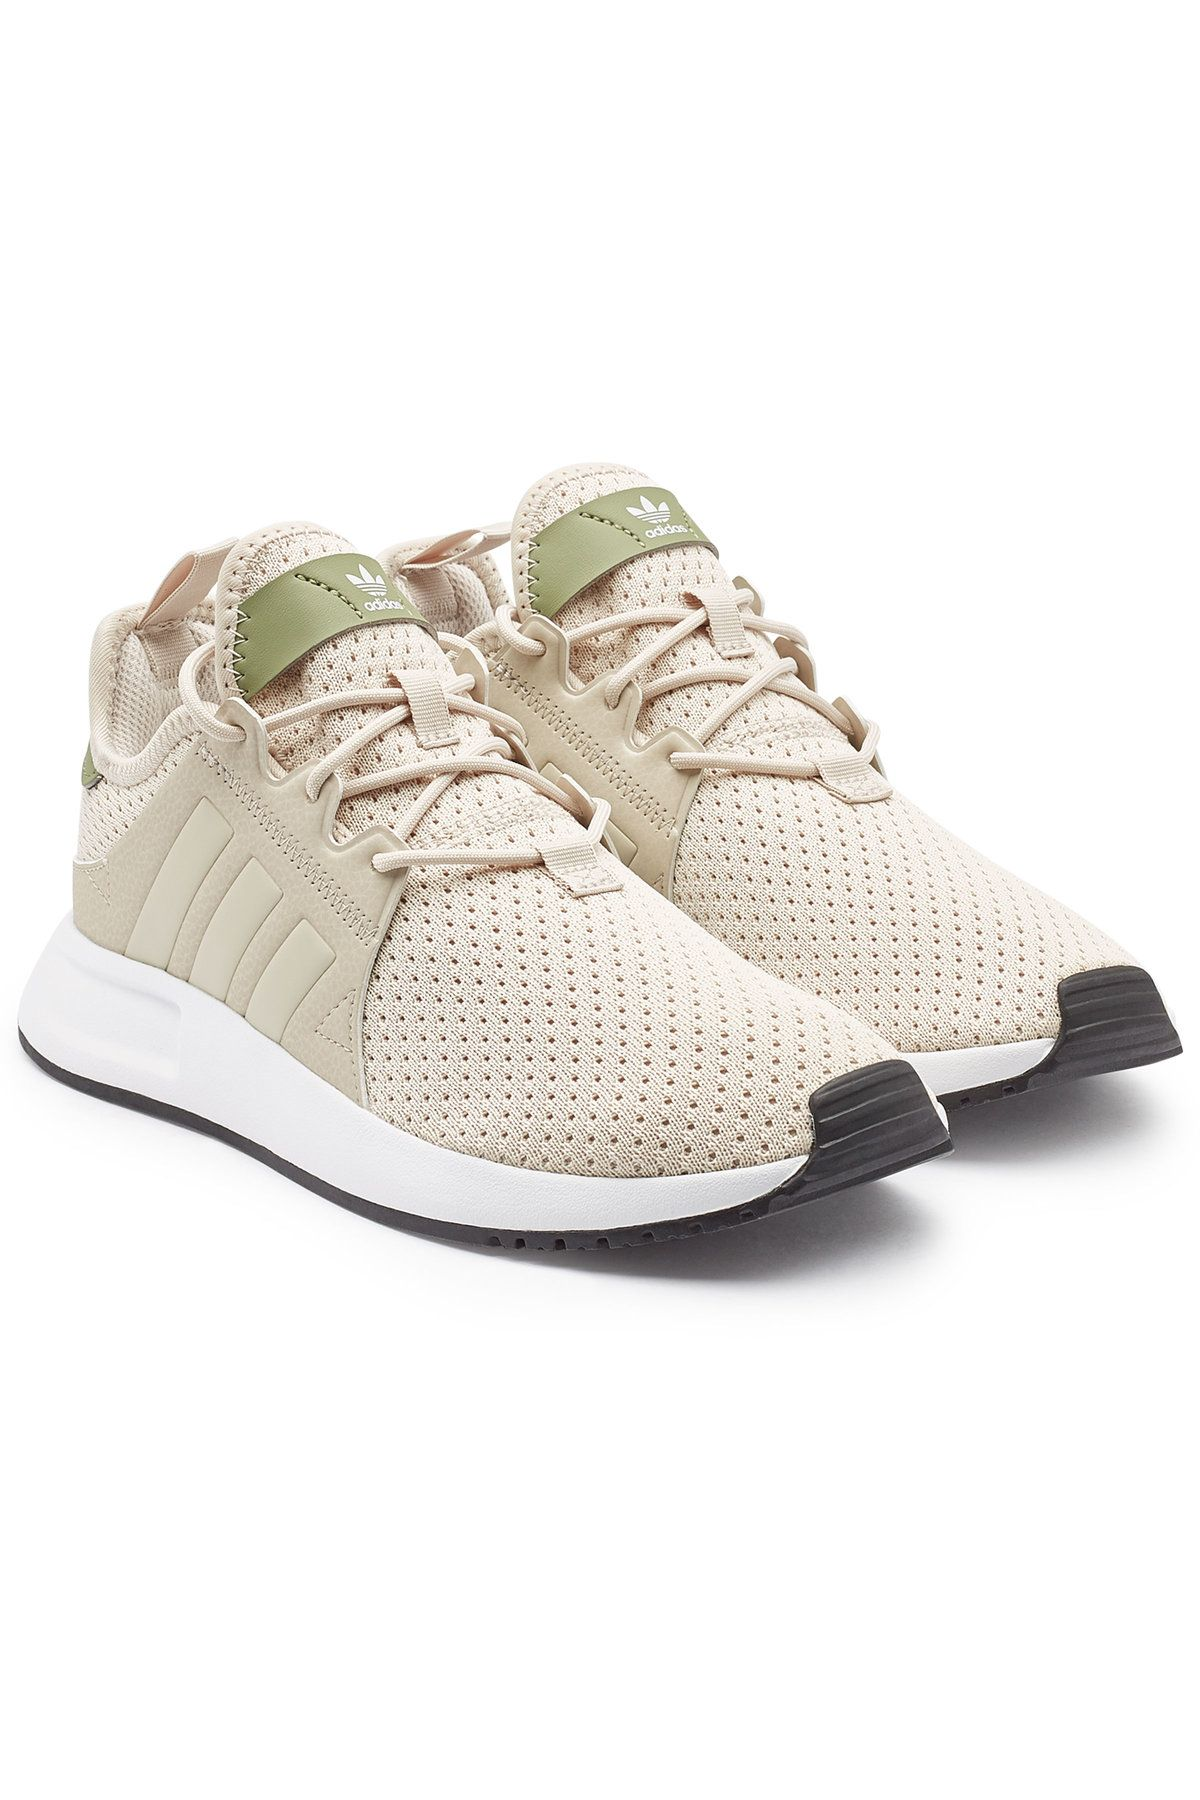 fcce259a944f8 Adidas Originals X Plr J Sneakers With Mesh In Beige | I love Adidas ...